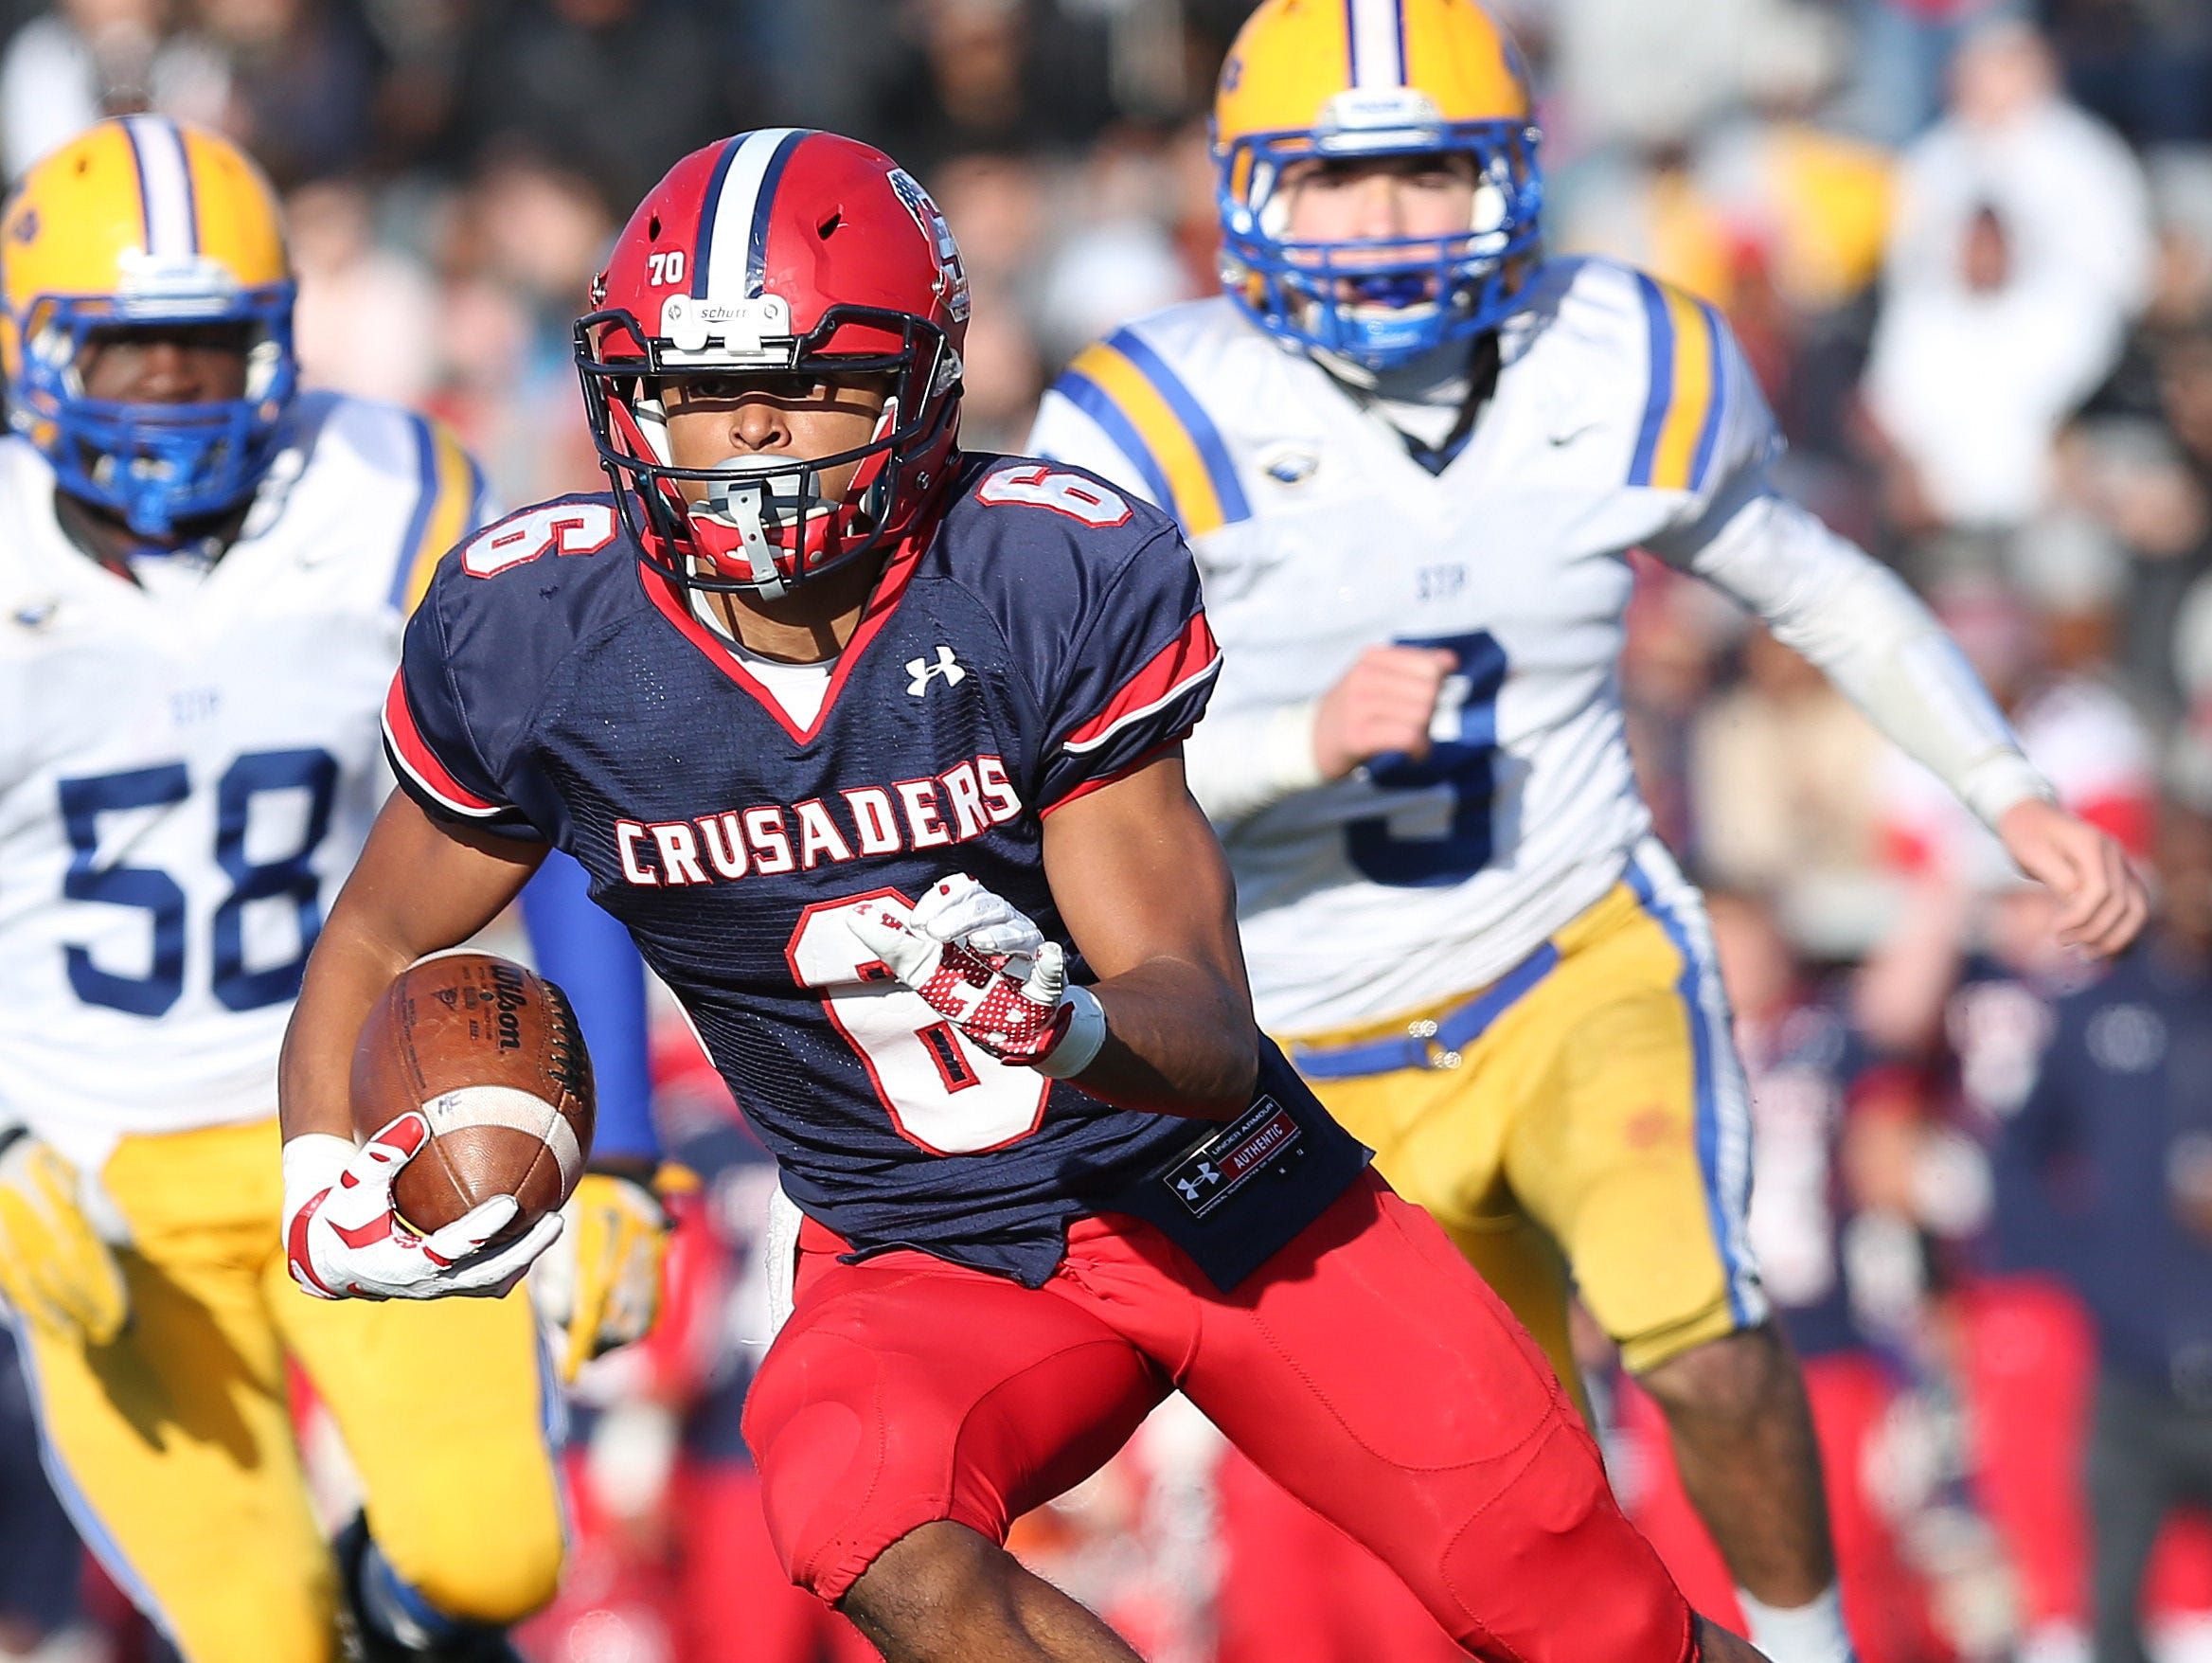 Stepinac's Terrell Morrison (6) finds some room in the Saint Peter's defense as he runs for a 3rd quarter touchdown during the NYCHSFL semifinals at Archbishop Stepinac High School in White Plains Nov 15, 2015. Stepinac won the game 49-7.